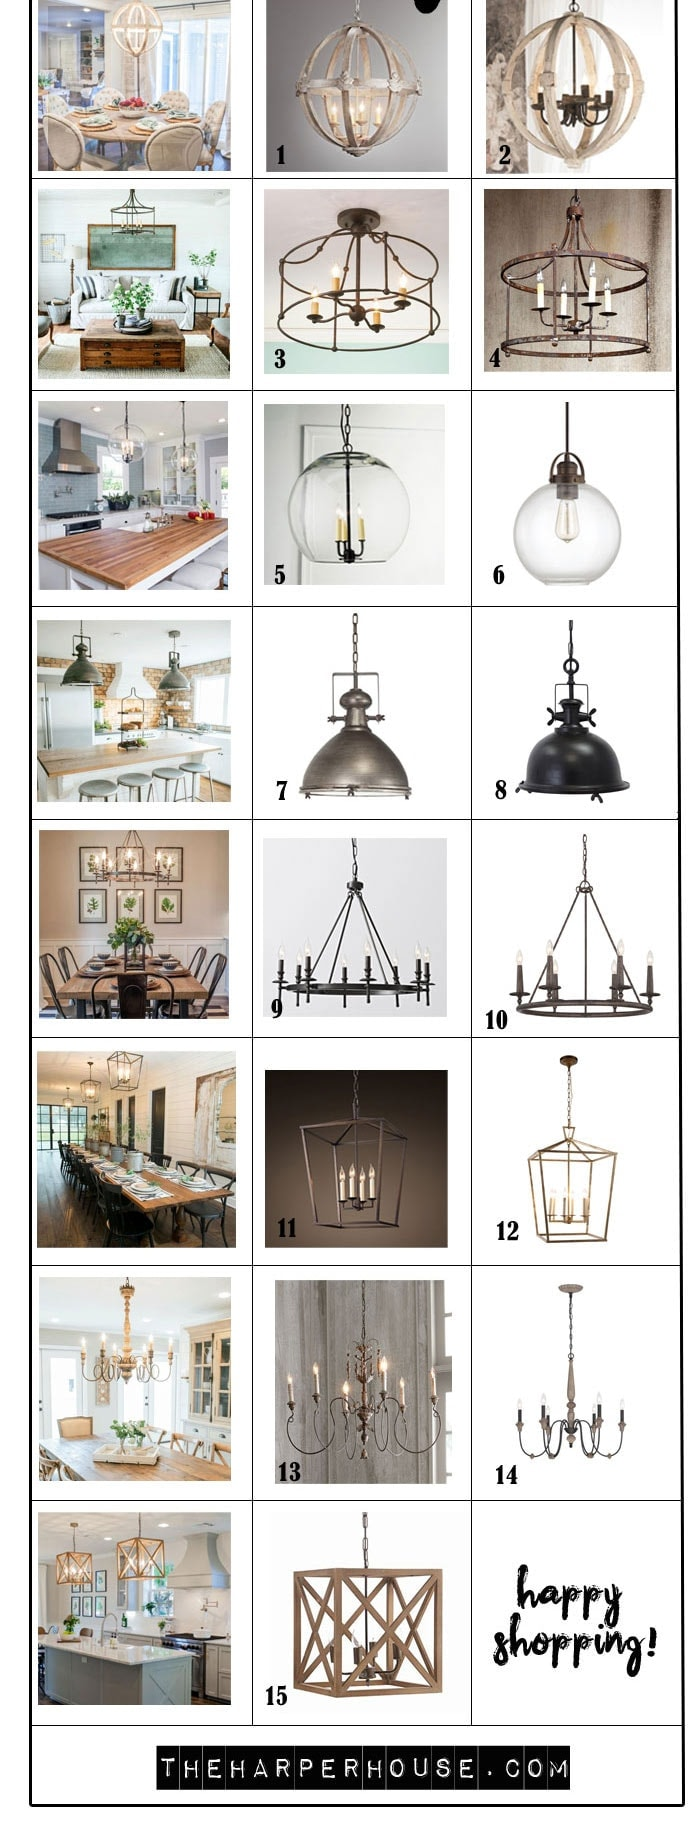 Chandelier Height 10 Foot Ceiling Favorite Light Fixtures For Fixer Upper Style The Harper House